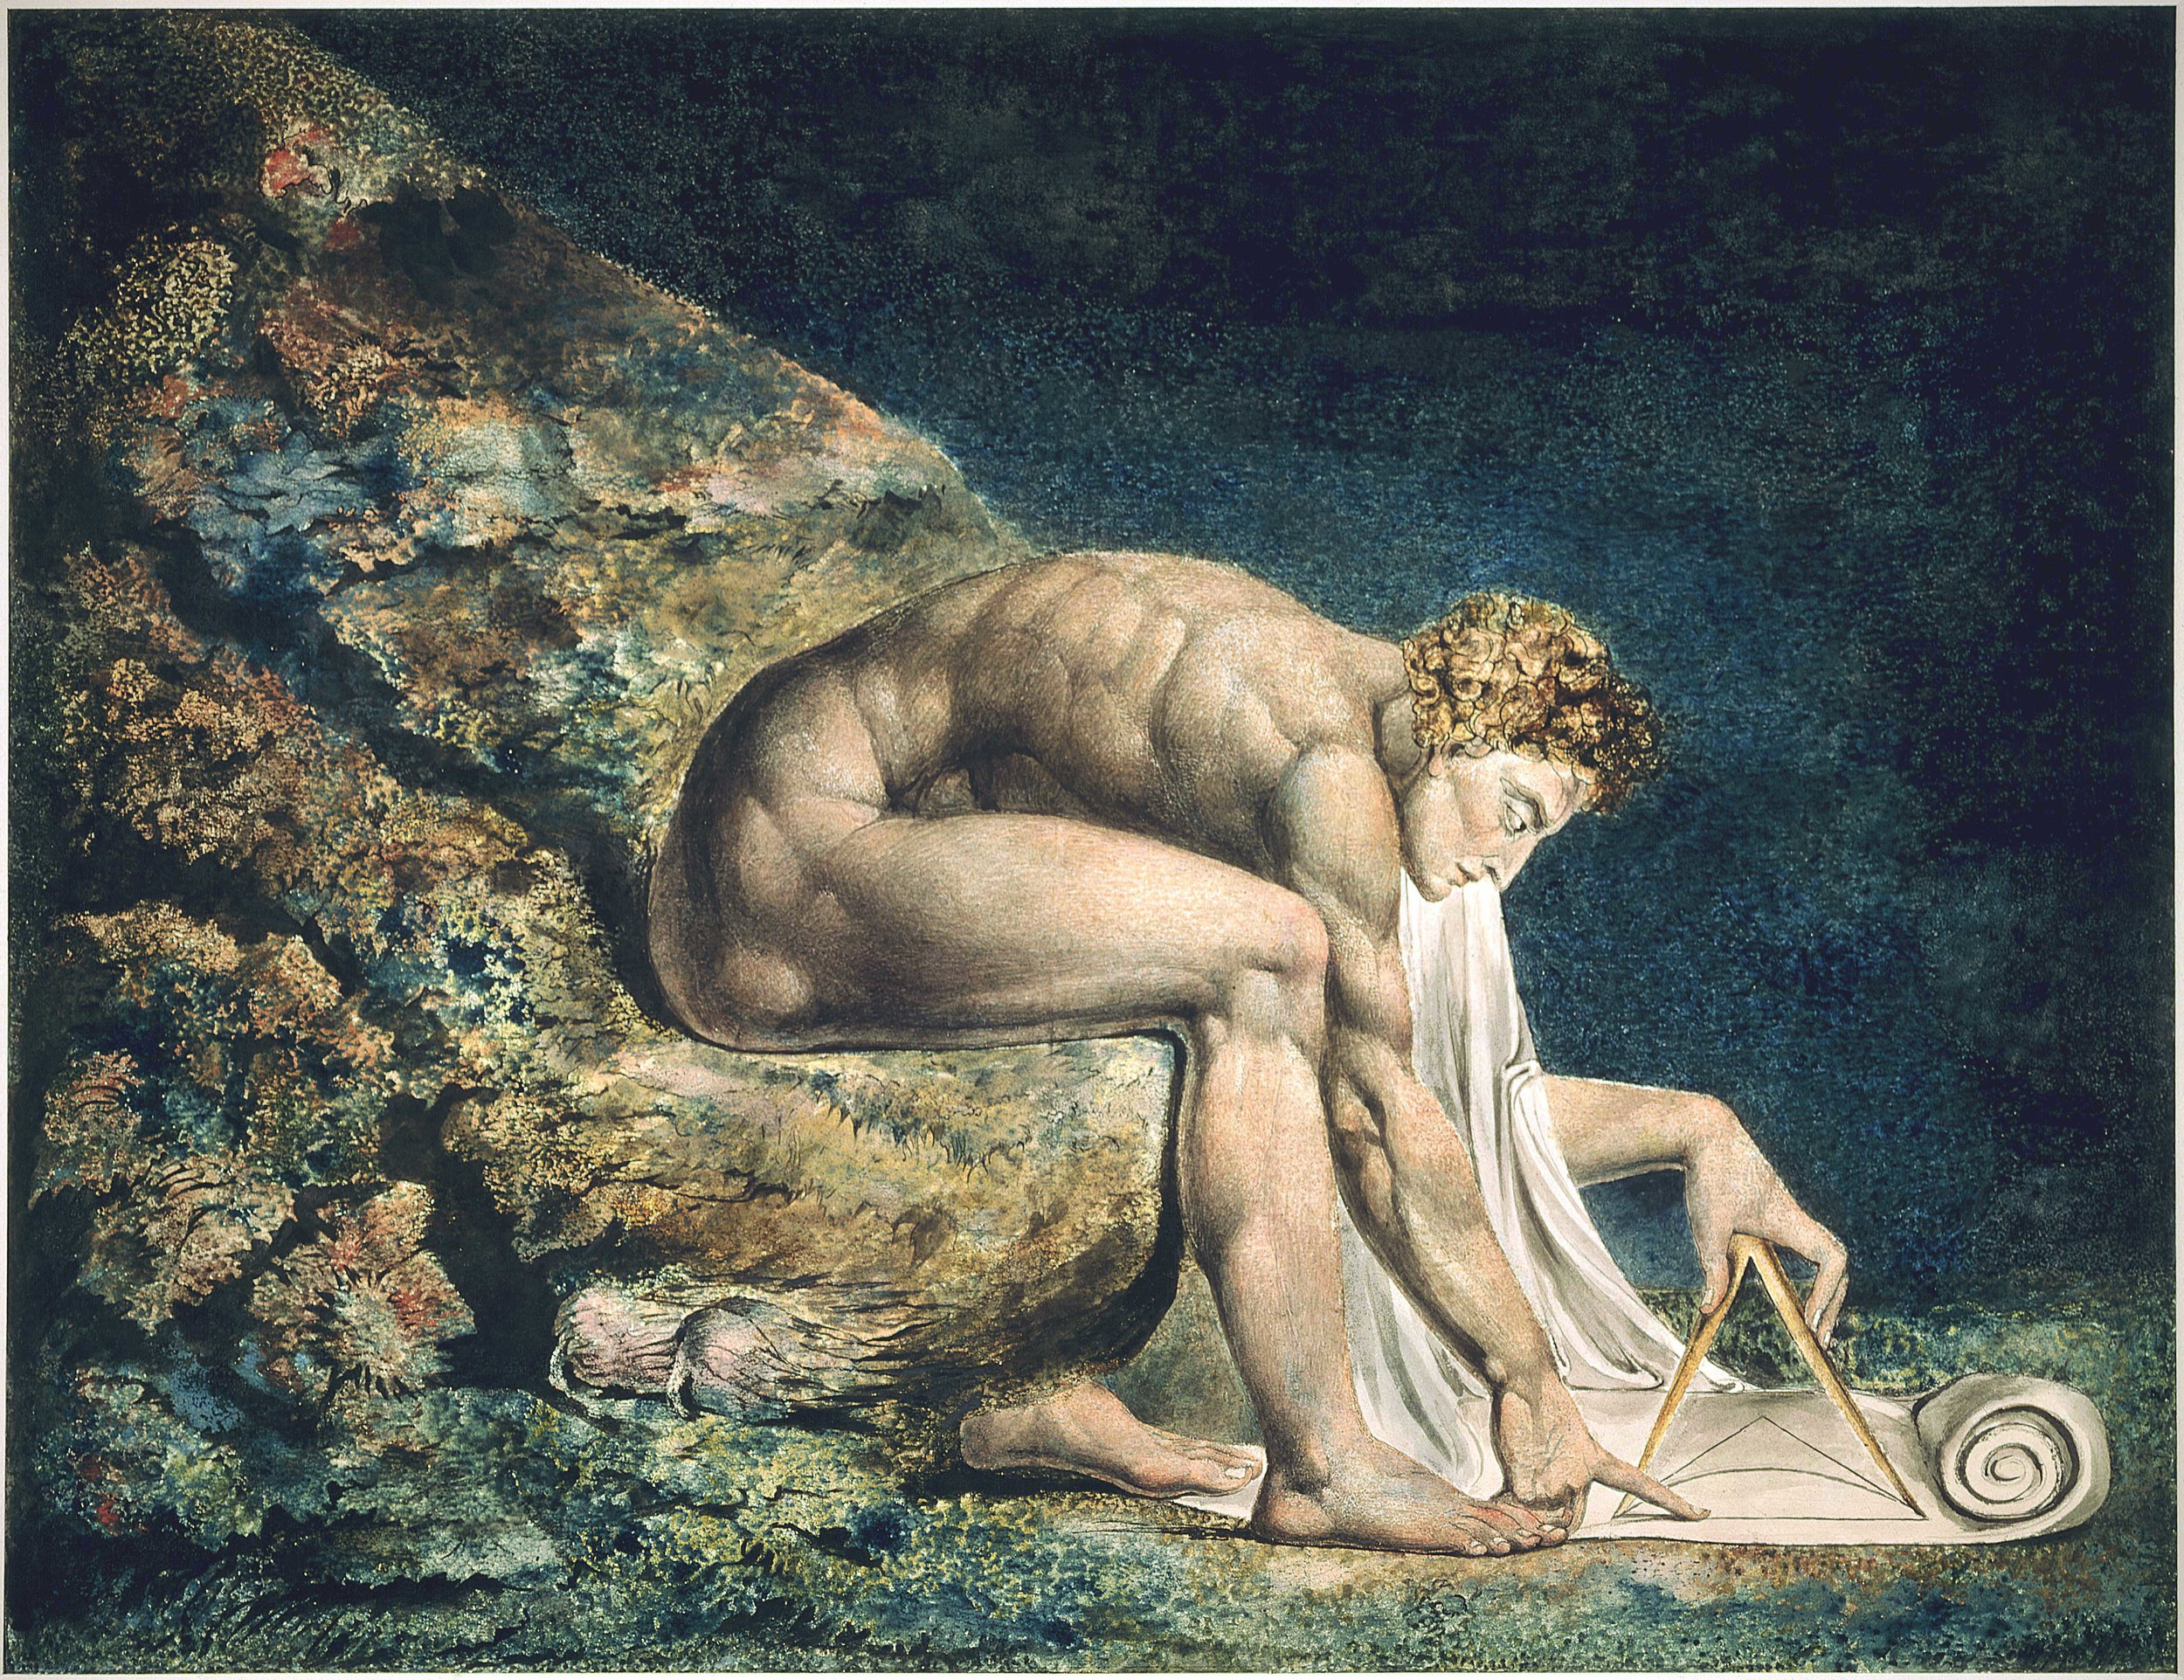 William Blake's Newton (1795), colour print with pen & ink and watercolour.   William Blake Archive/Wikimedia Commons  (public domain)